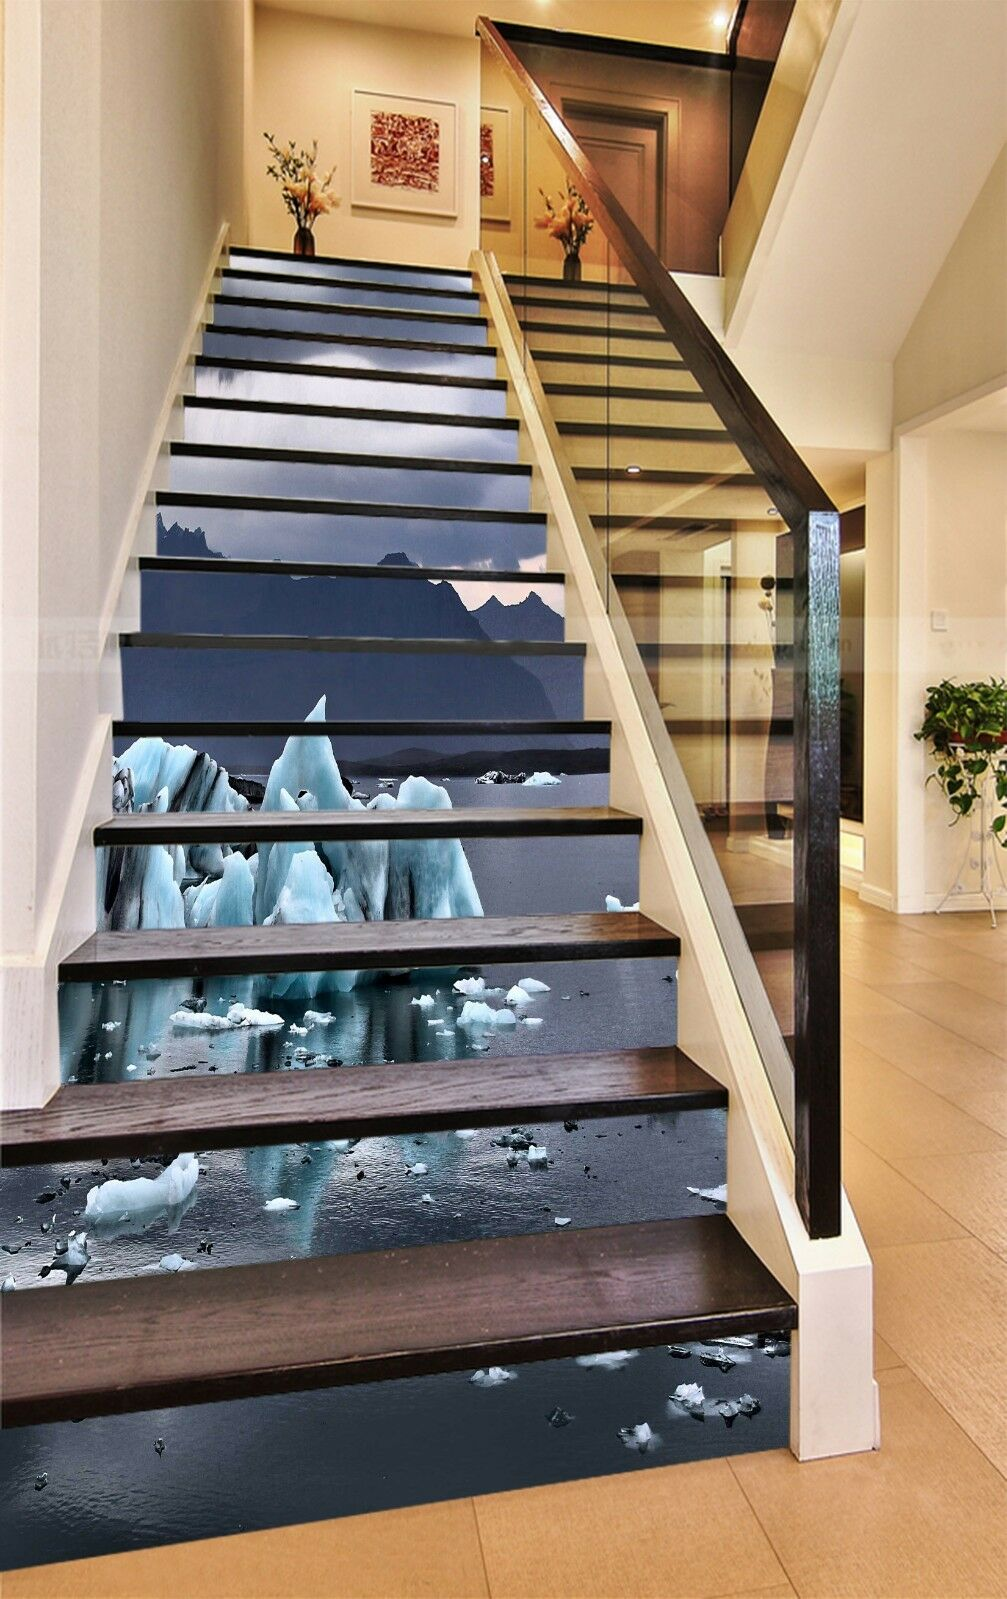 3D Ice sea 7 Stair Risers Decoration Photo Mural Vinyl Decal Wallpaper UK